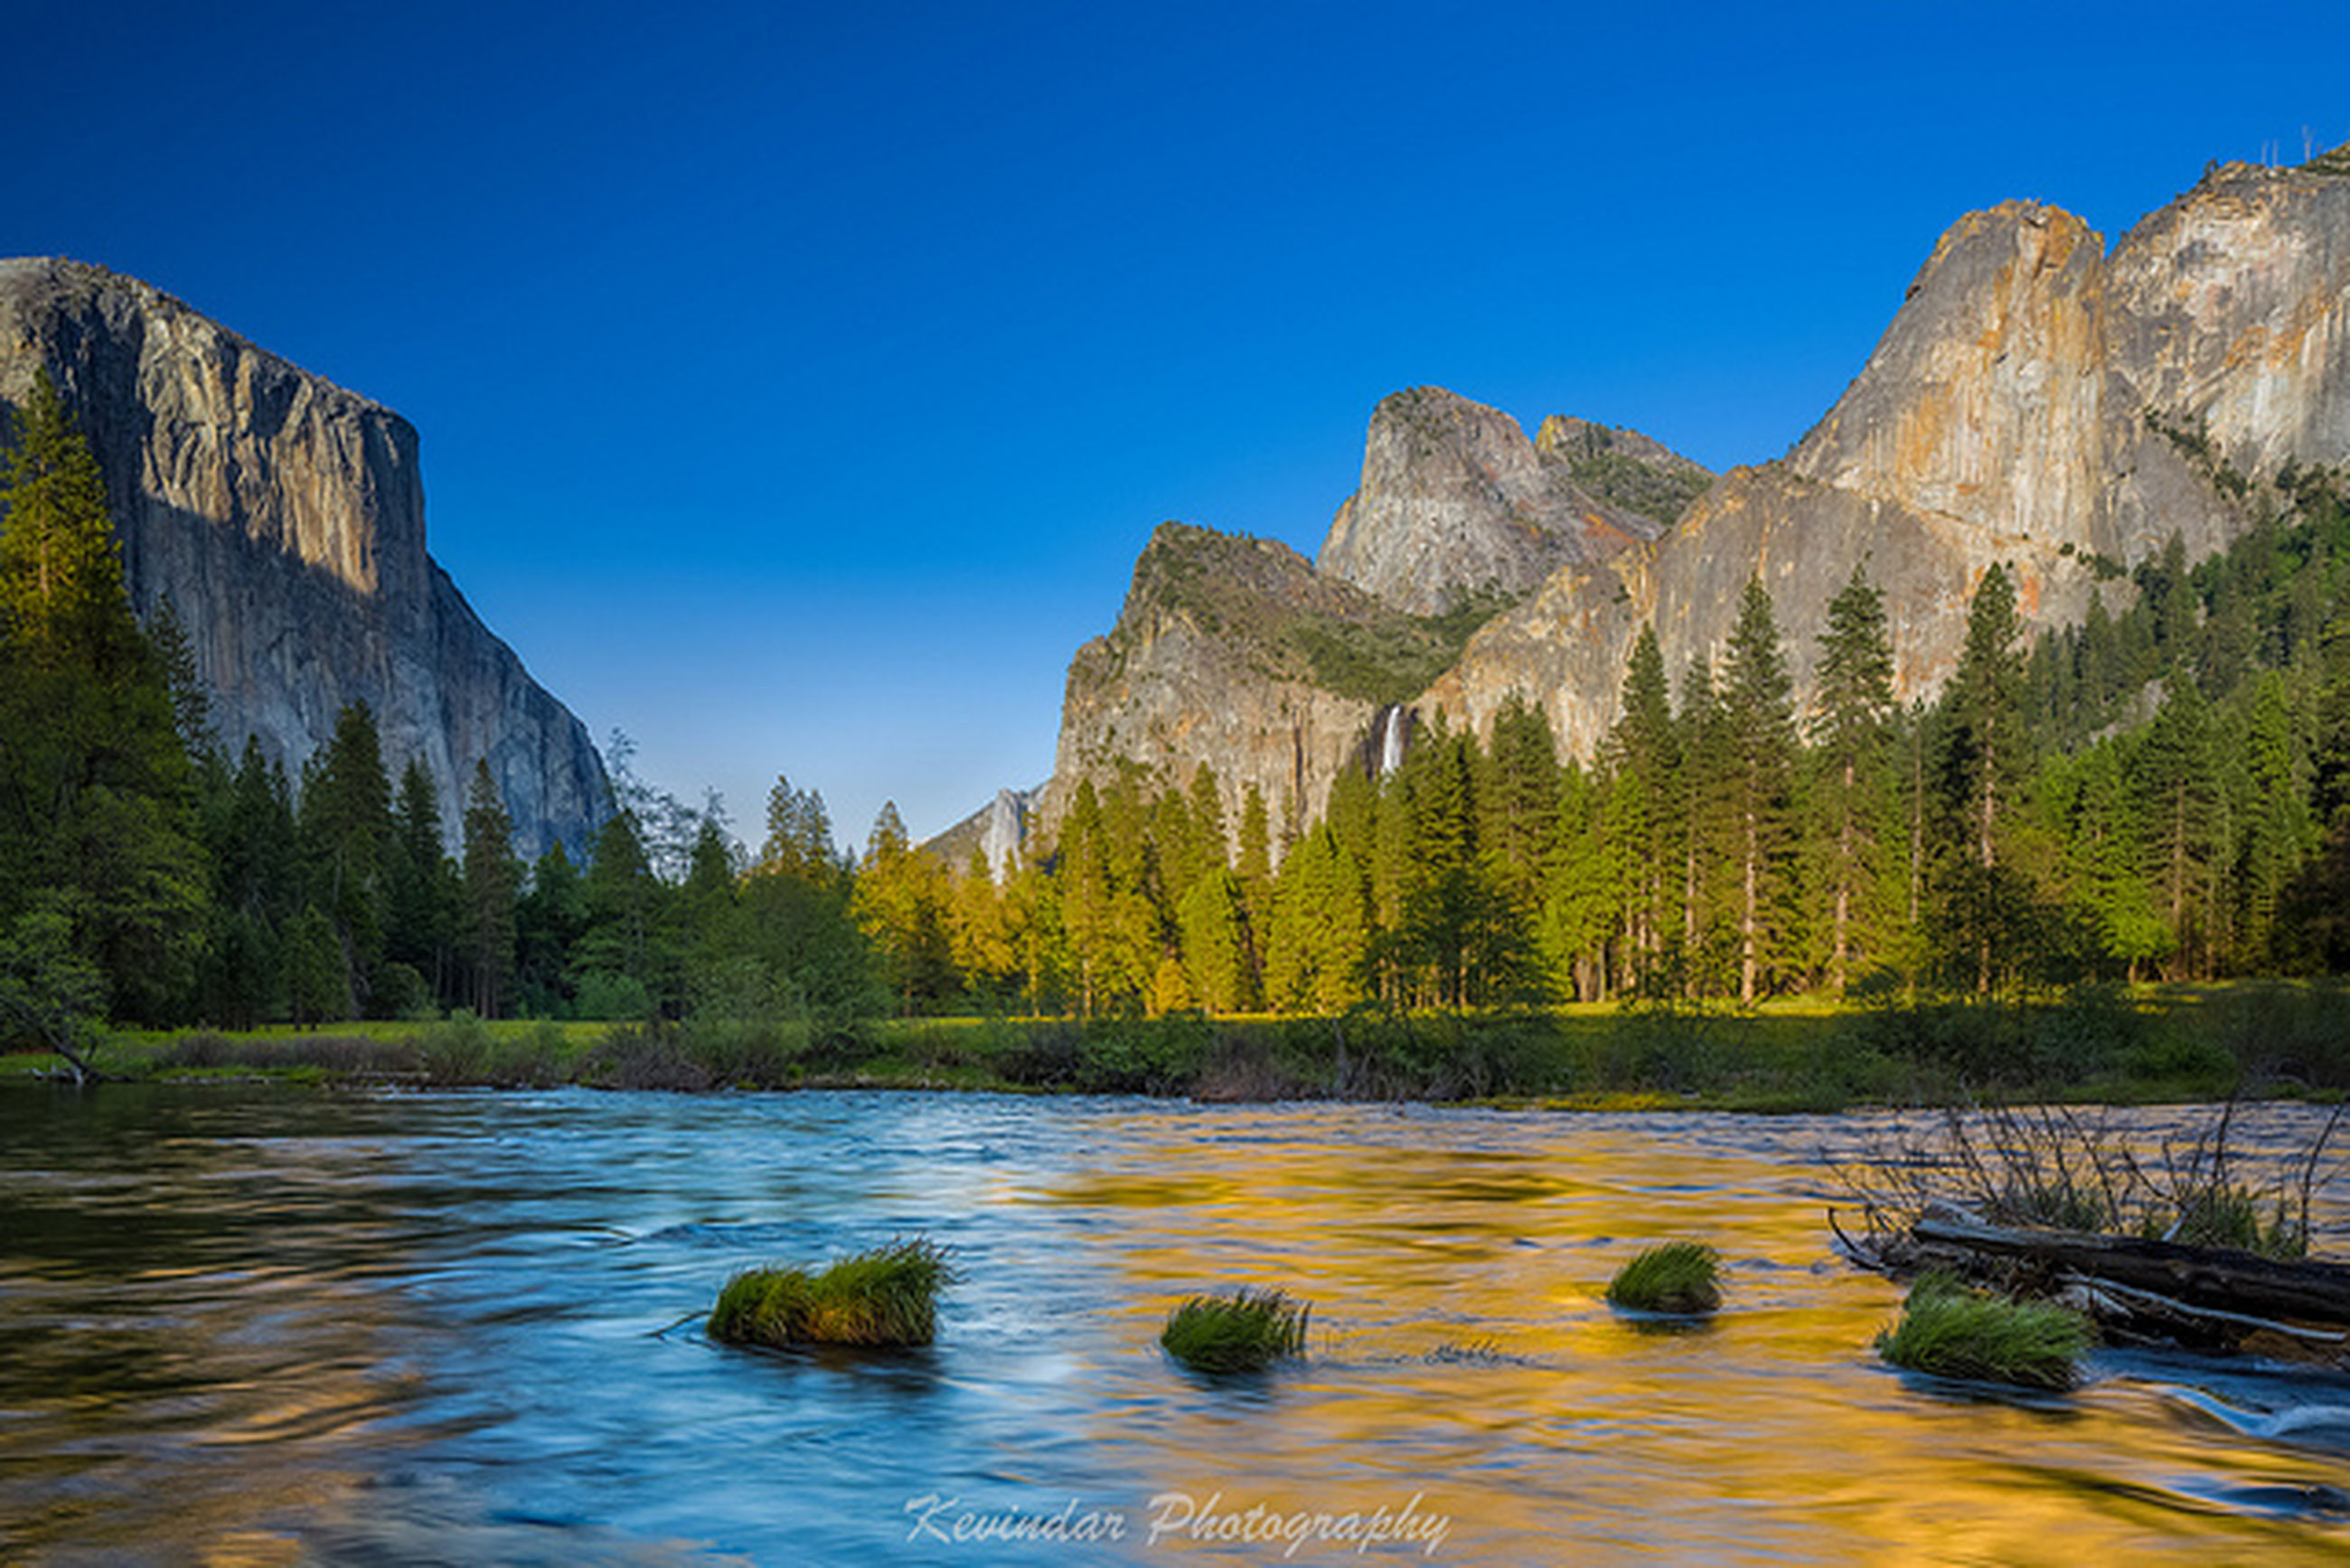 water, clear sky, mountain, tranquil scene, tranquility, scenics, beauty in nature, rock formation, nature, rock - object, blue, lake, waterfront, cliff, rocky mountains, idyllic, tree, river, rock, reflection